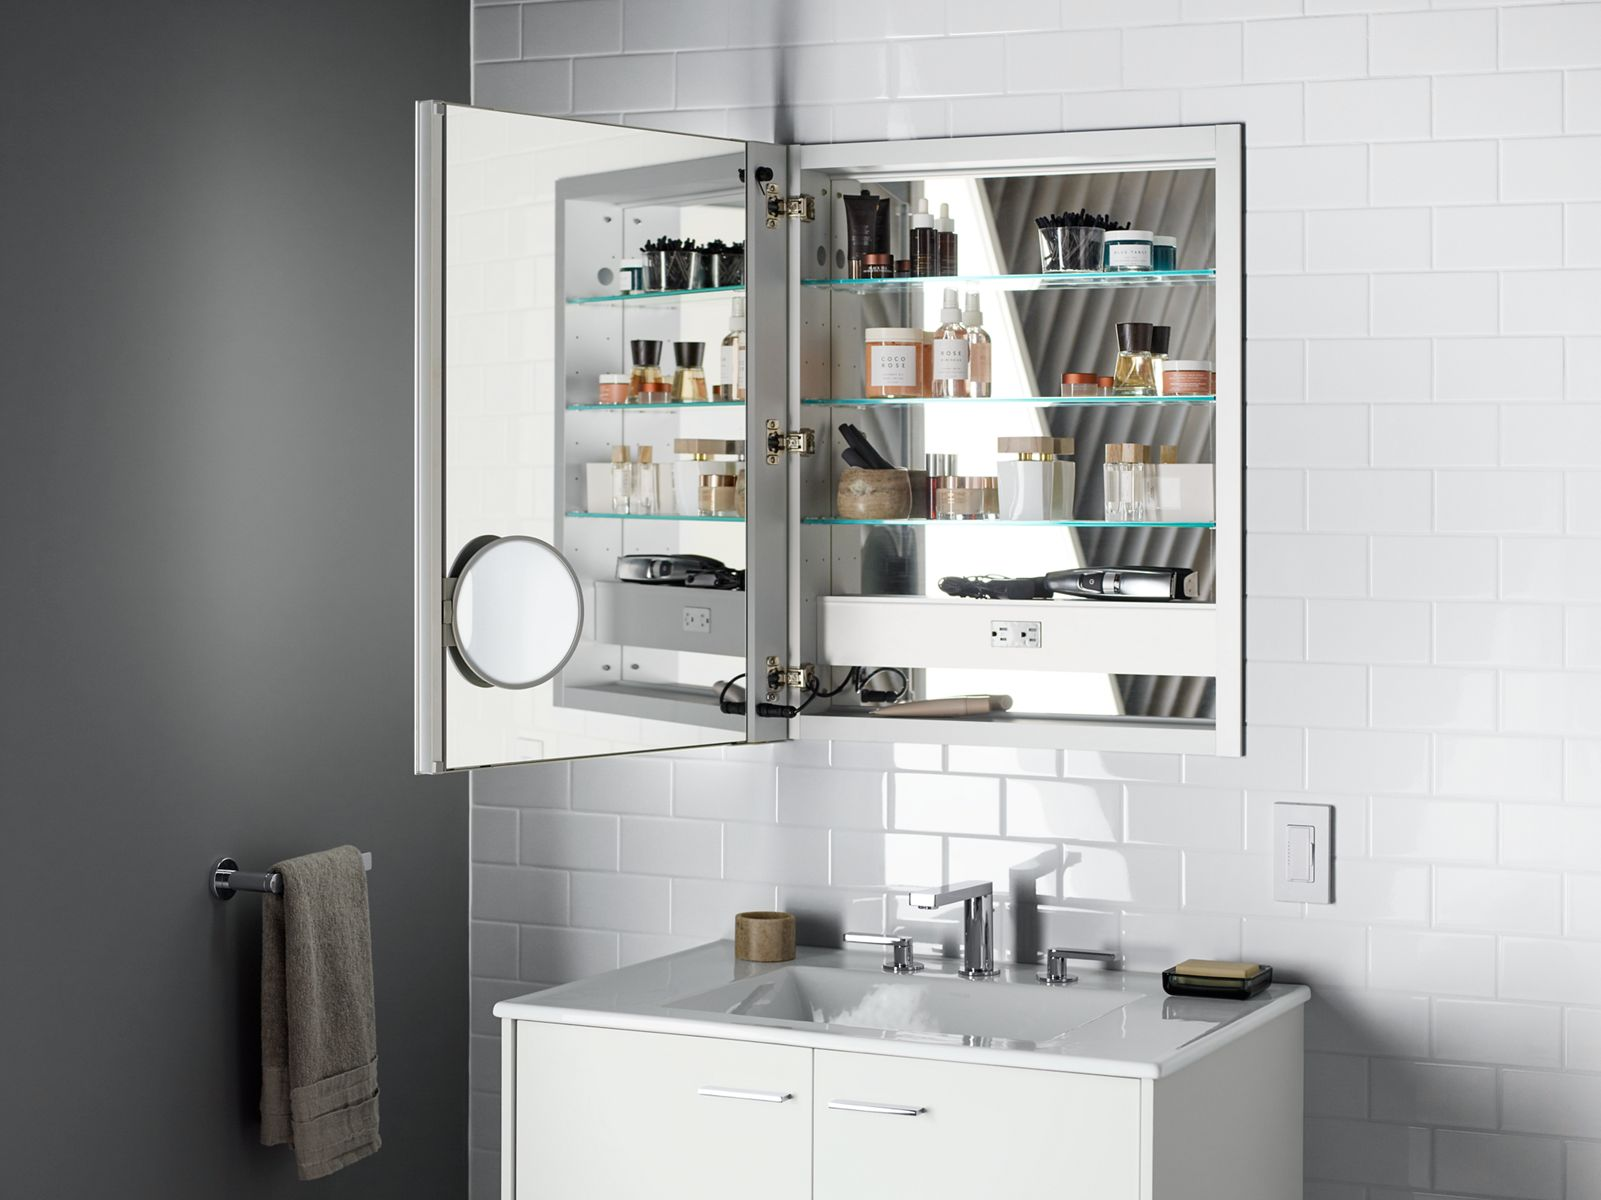 Verdera Medicine Cabinets Bathroom New Products Bathroom KOHLER